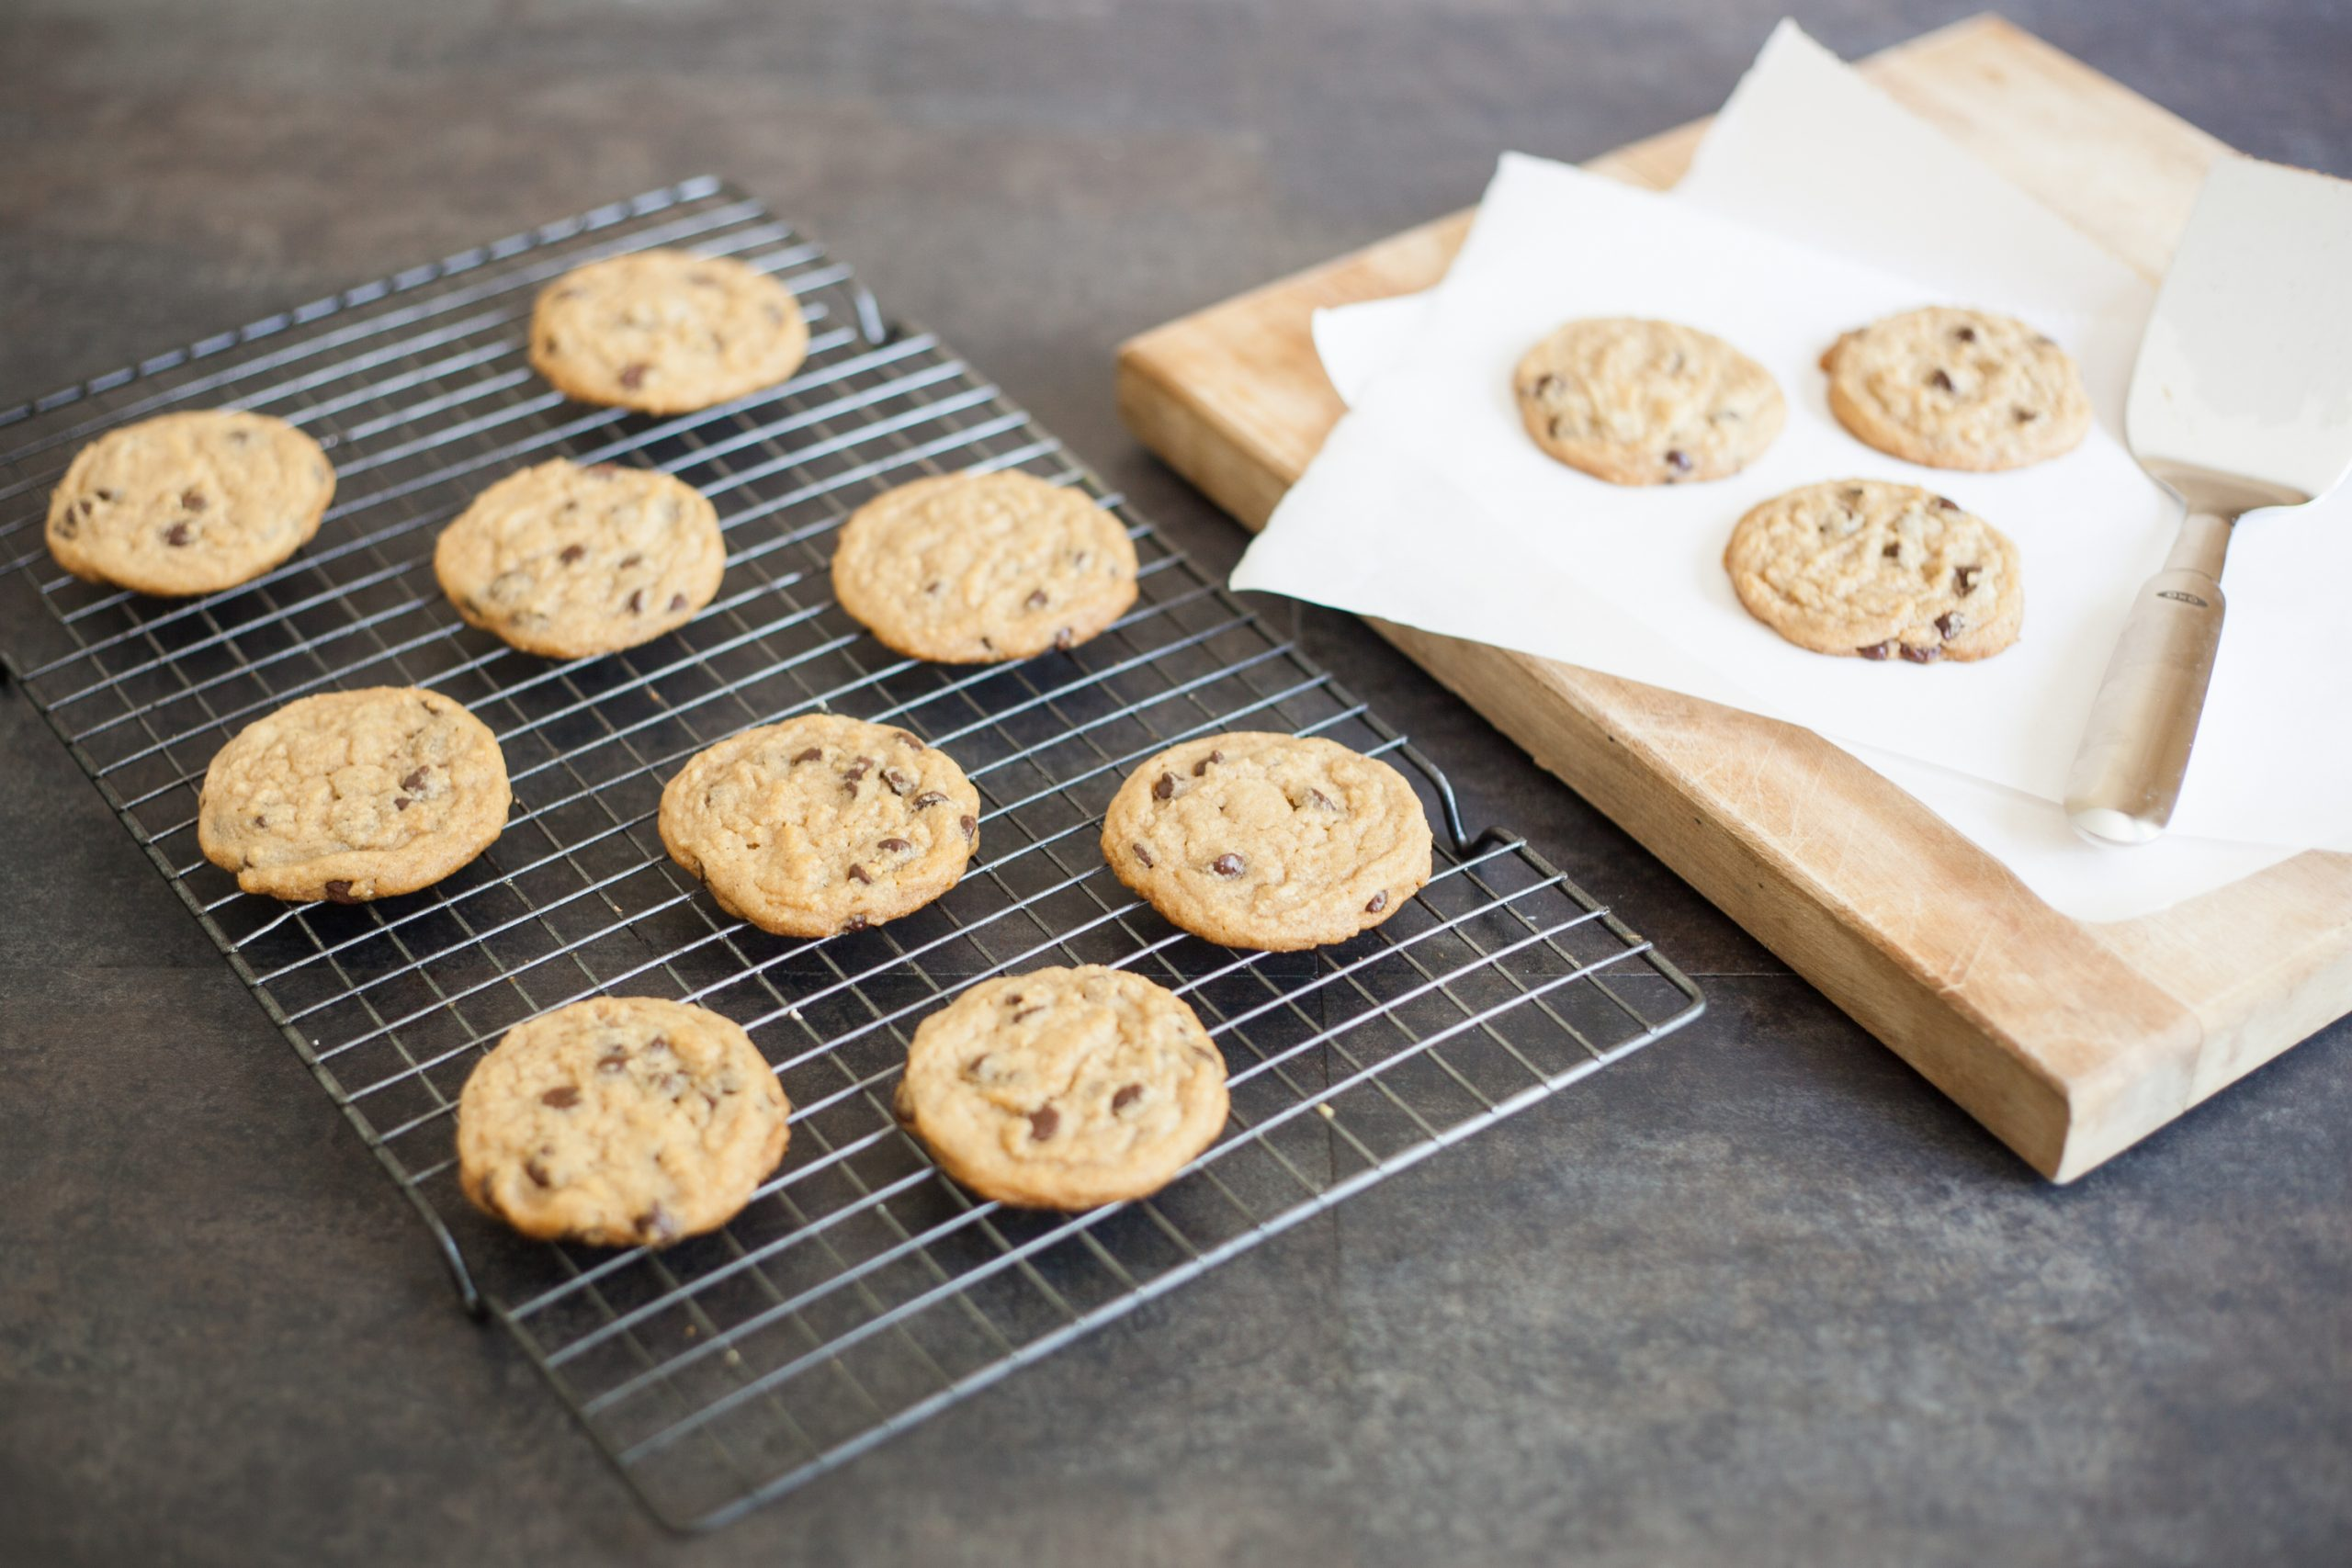 Do you want to learn exceptional tips on how to bake cookies in a convection oven? Well, the art of achieving perfect baked cookies lies in several aspects, including mixing the ingredients, convection oven temperature, dough items, kneading, cookie-cutter pans, and baking procedure.